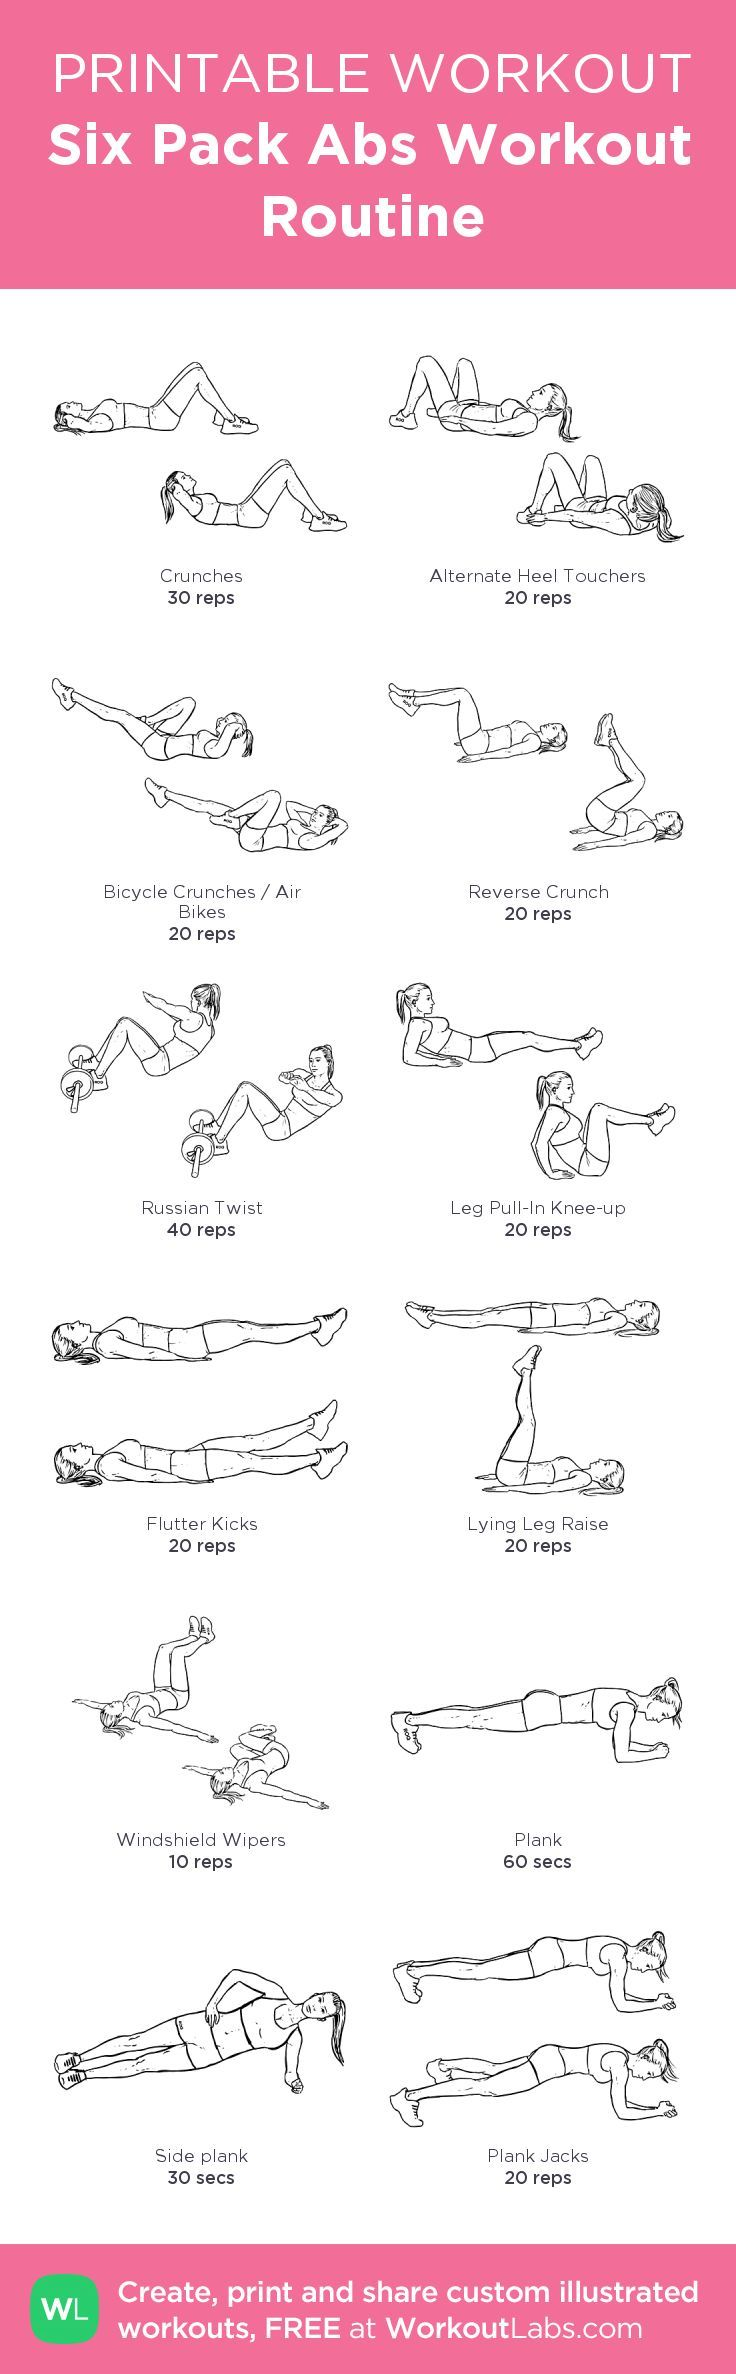 Six-pack abs, gain muscle or weight loss, these workout ...